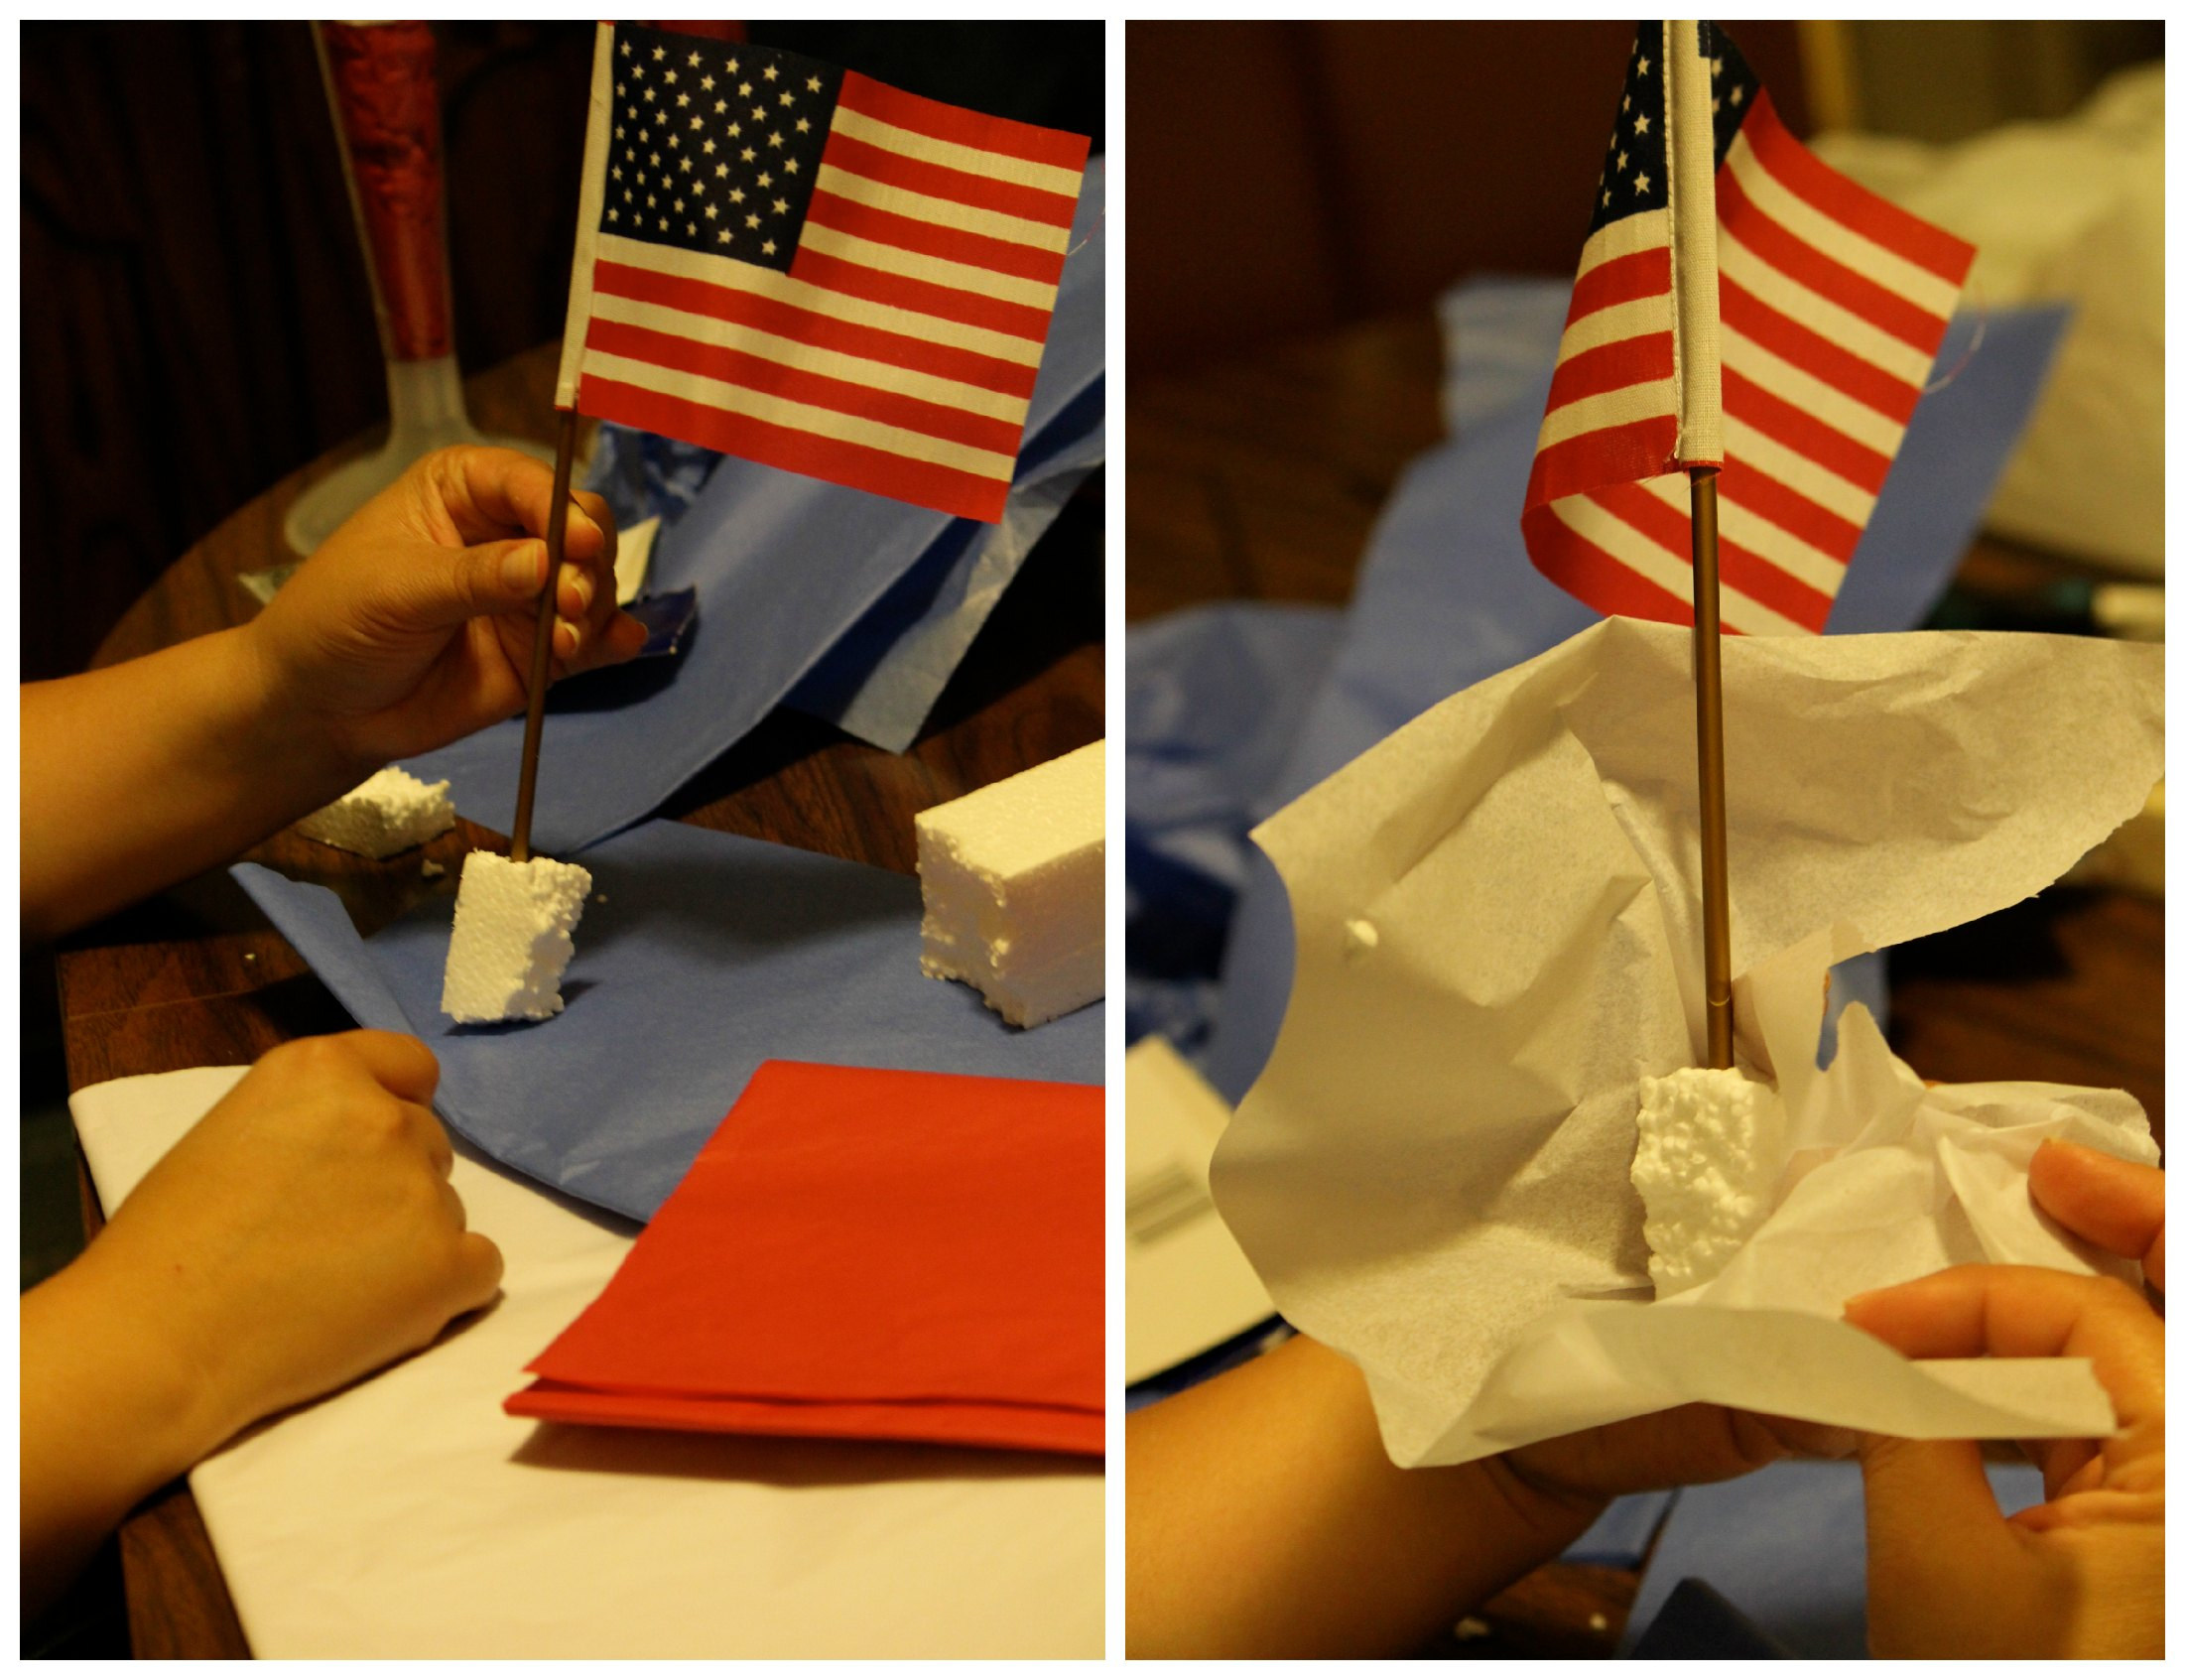 Easy DIY Patriotic 4th of July Table Decor : Making a patriotic centerpiece from www.momendeavors.com size 2202 x 1693 jpeg 417kB